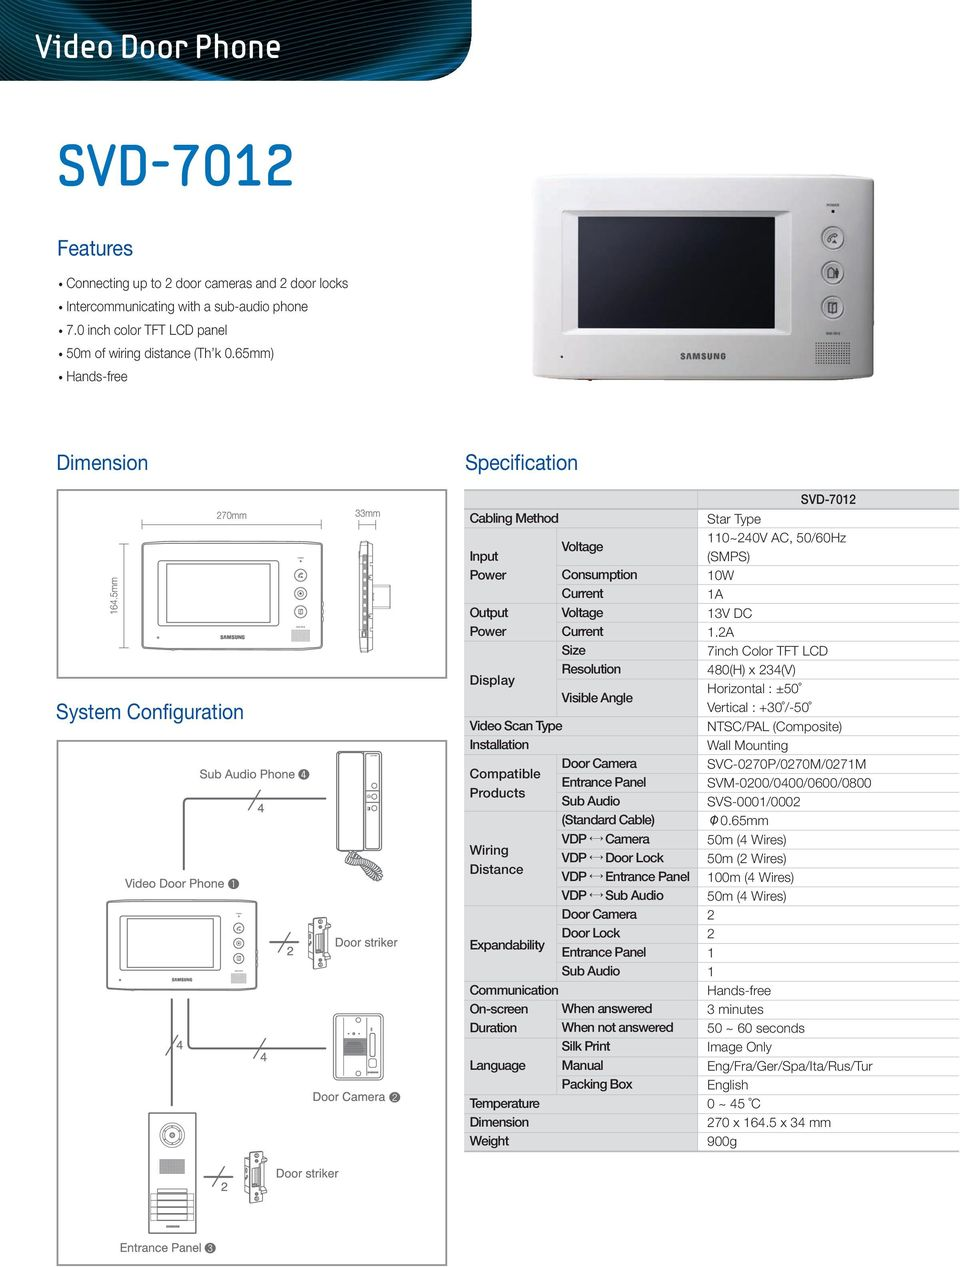 Camera VDP Door Lock VDP VDP Sub Audio Door Lock Sub Audio Communication On-screen When answered Duration When not answered Silk Print Language Manual Packing Box SVD-70 Star Type 0~40V AC, 50/60Hz